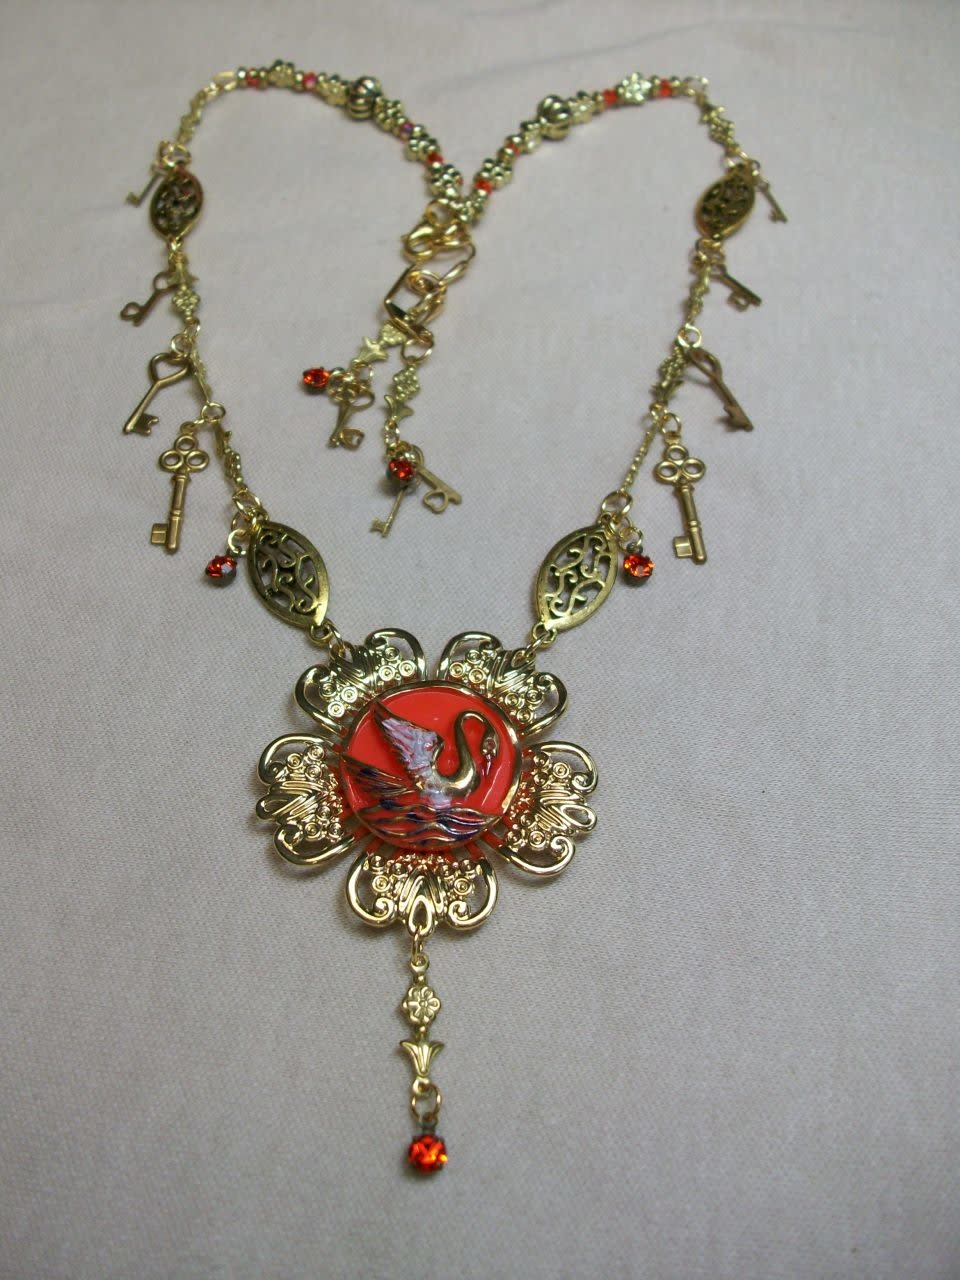 Sharon B's Originals Gold Orange Swan & Crystal Drops Necklace & Earring Set